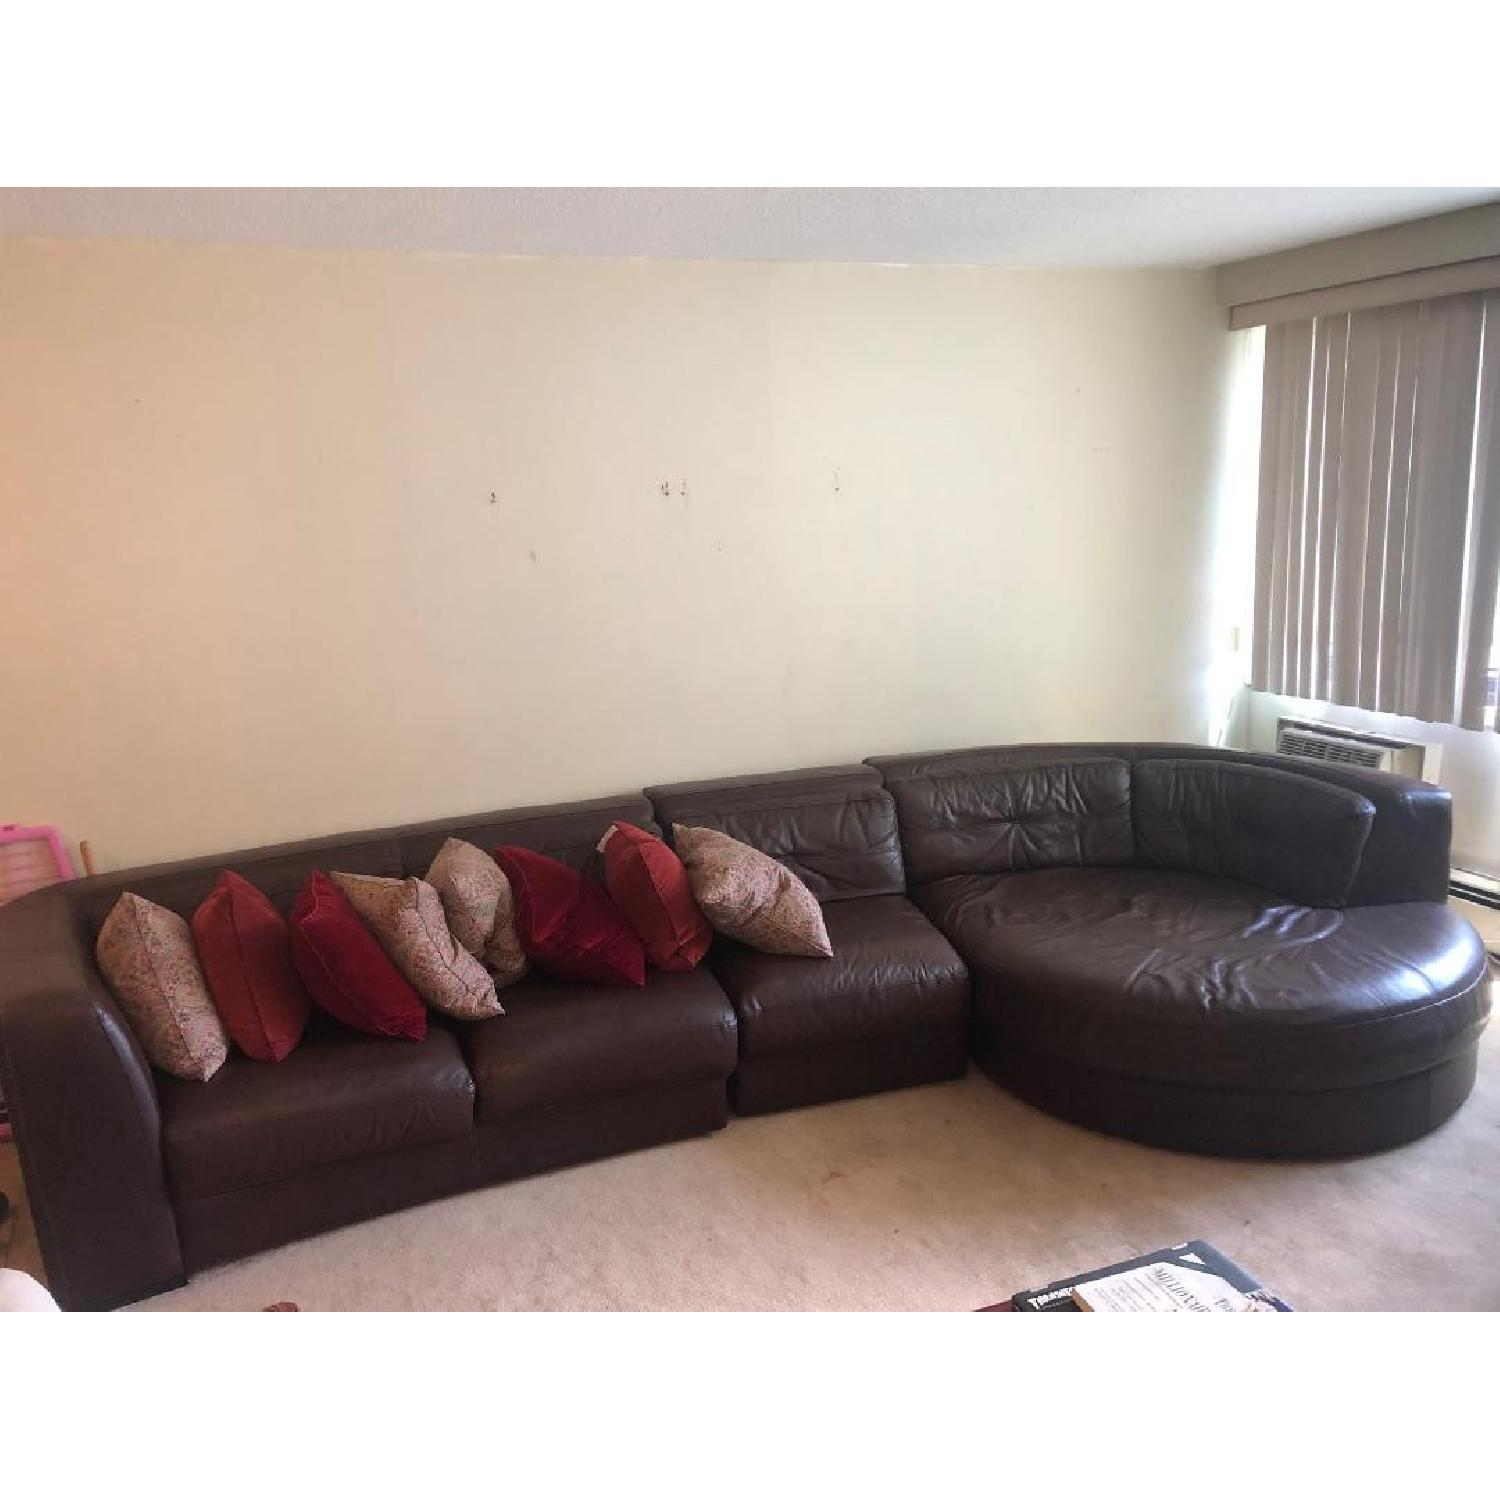 Raymour & Flanigan Austin 3 Piece Leather Sectional Sofa - image-8